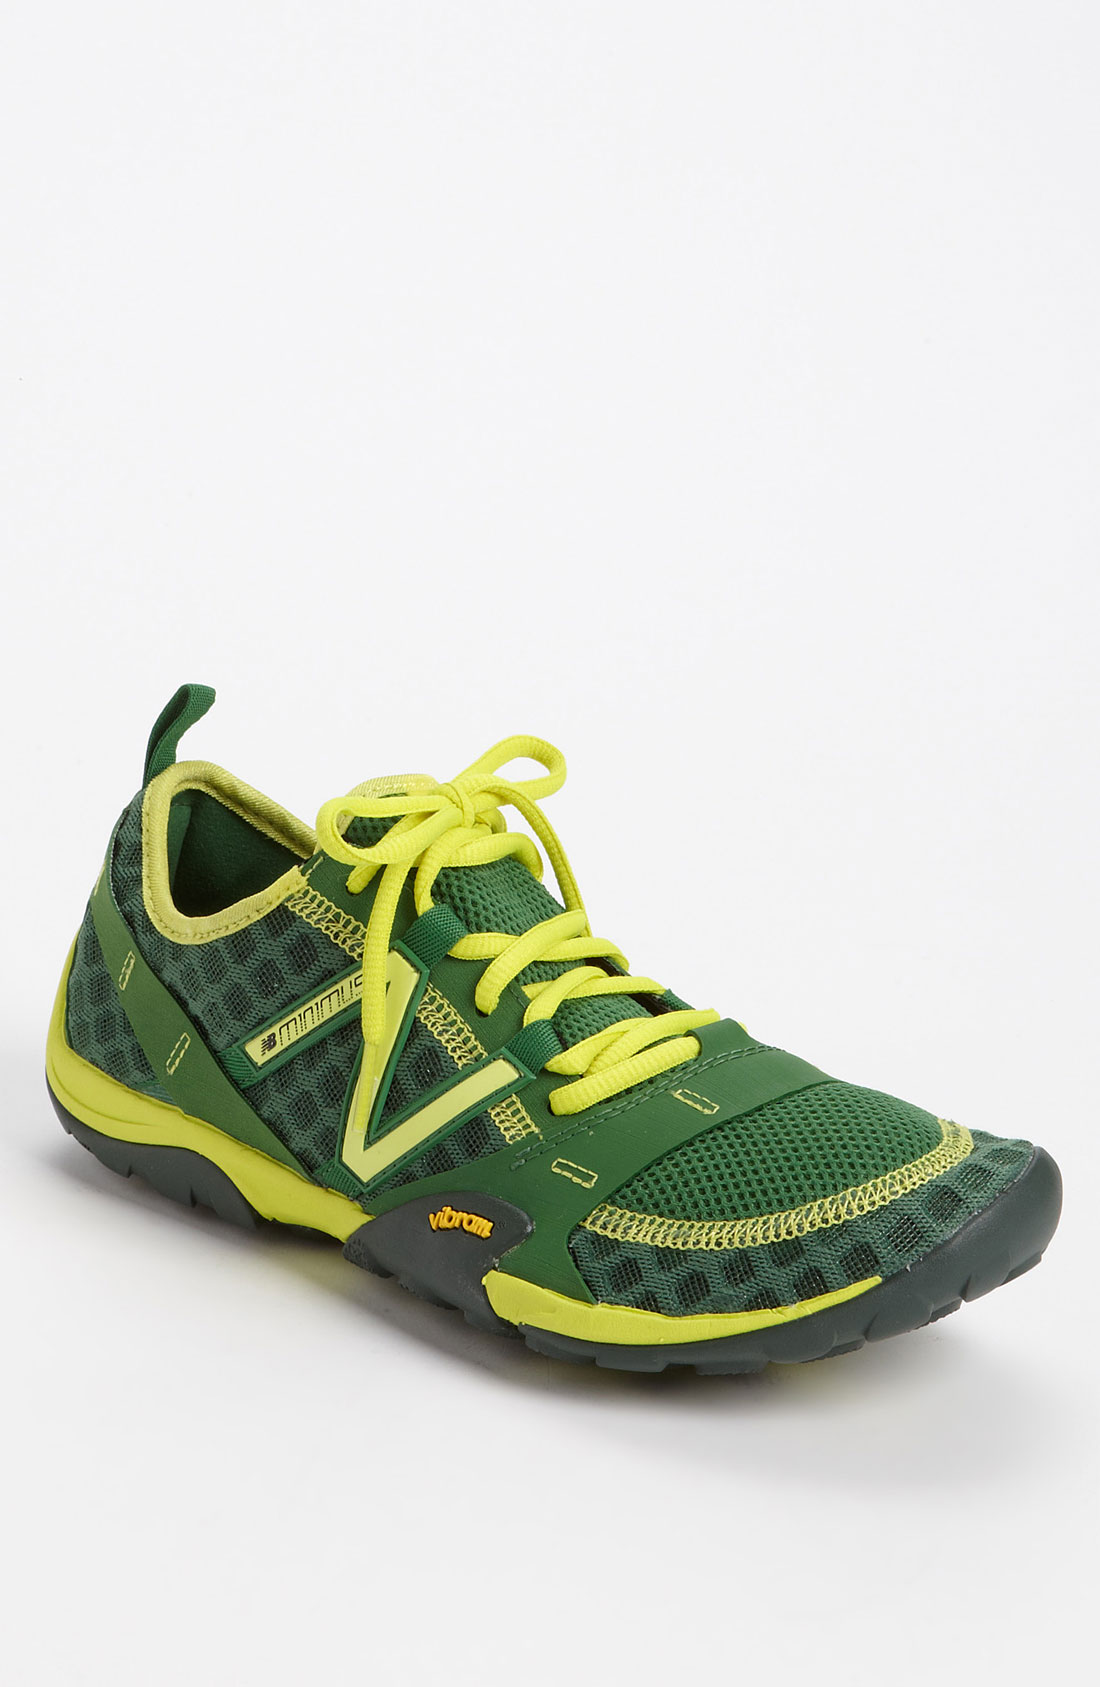 New Balance Mt10 Trail Running Shoe in Yellow for Men